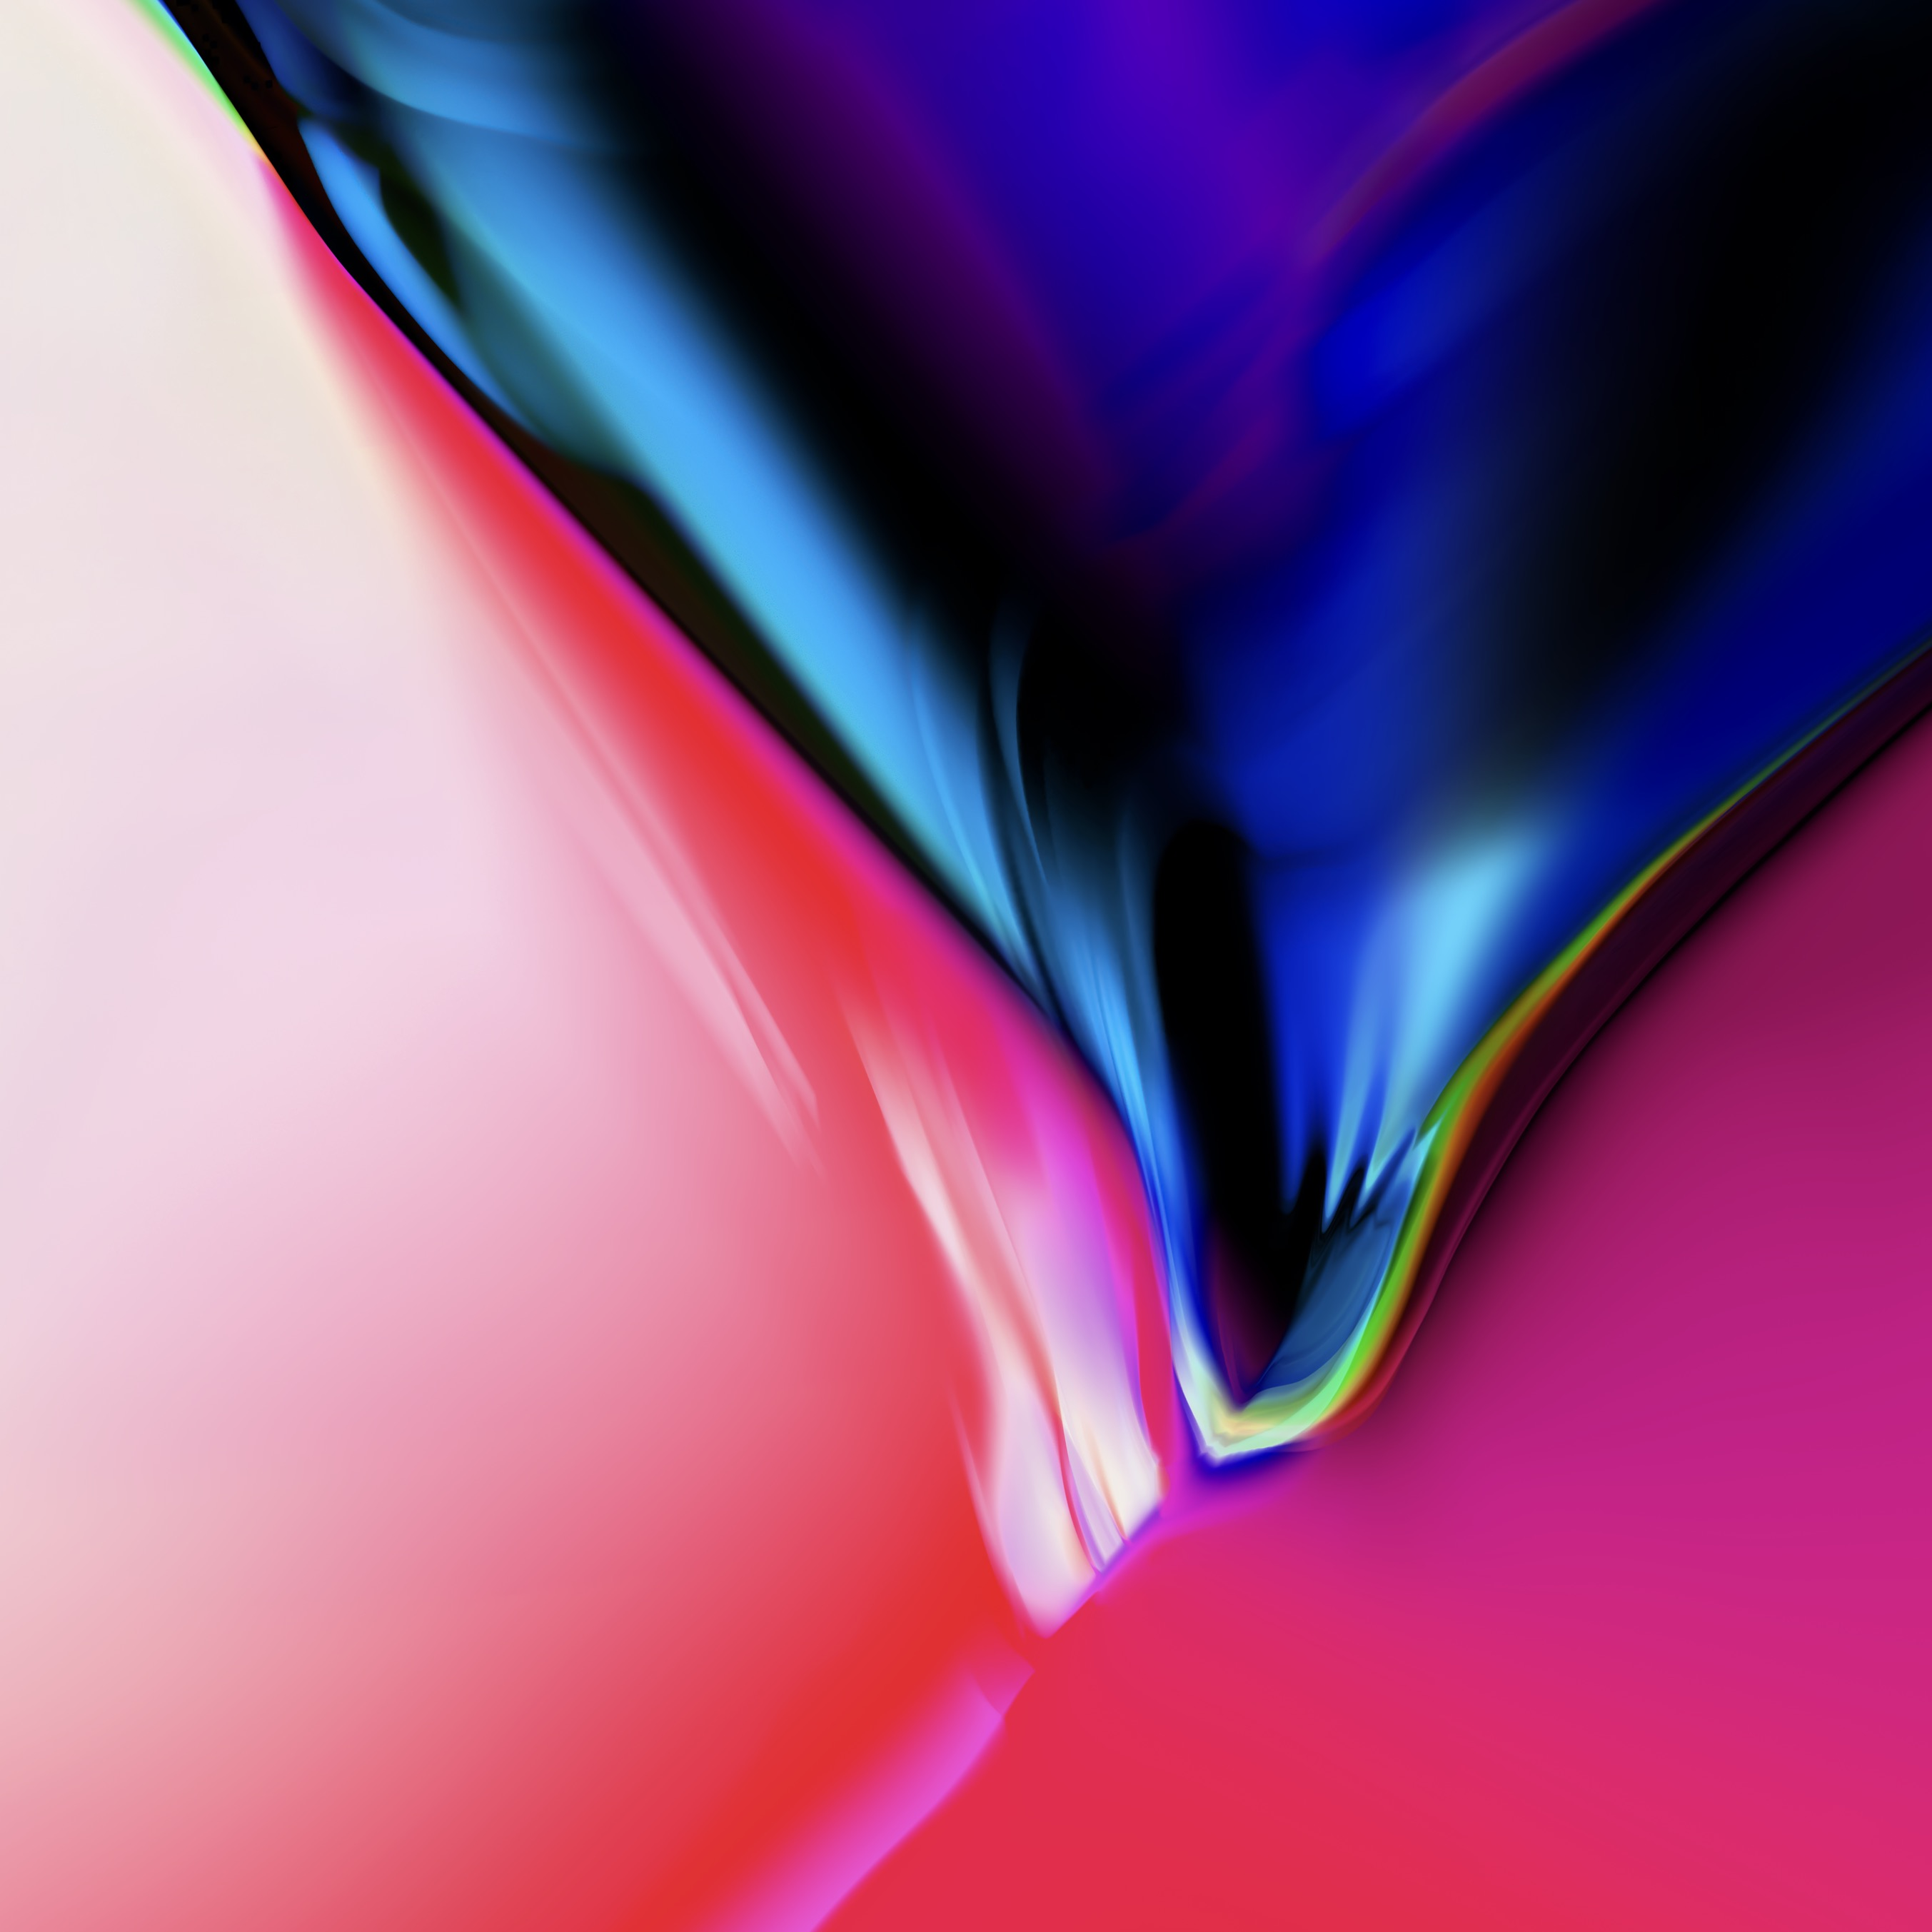 Black Iphone Wallpaper: IPhone X Wallpapers For Download